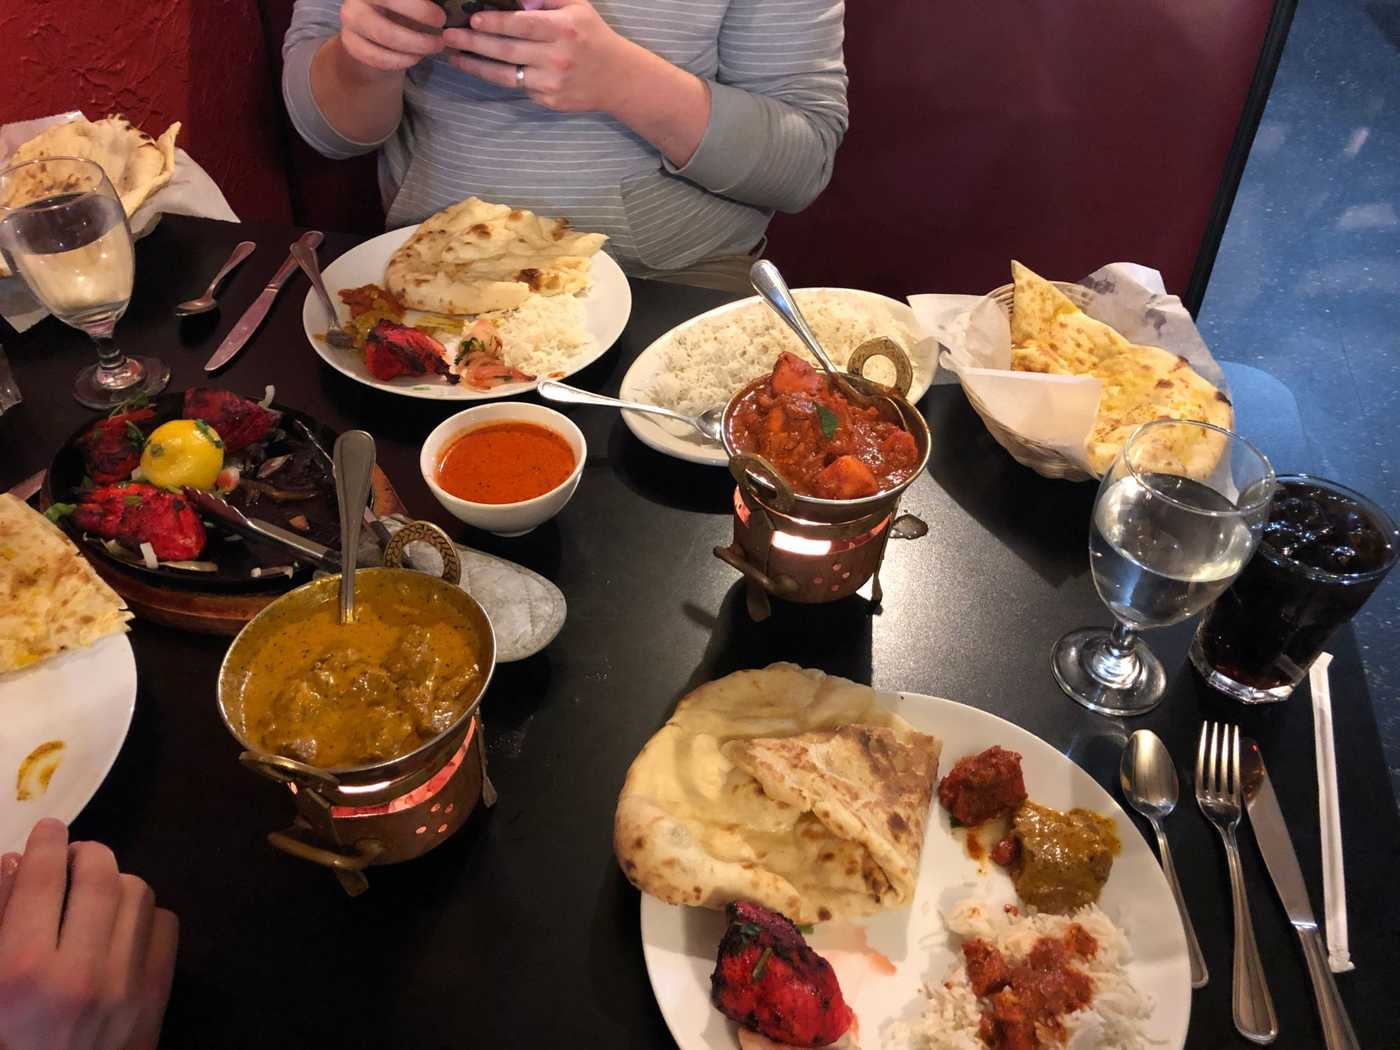 My first experience with Indian Food